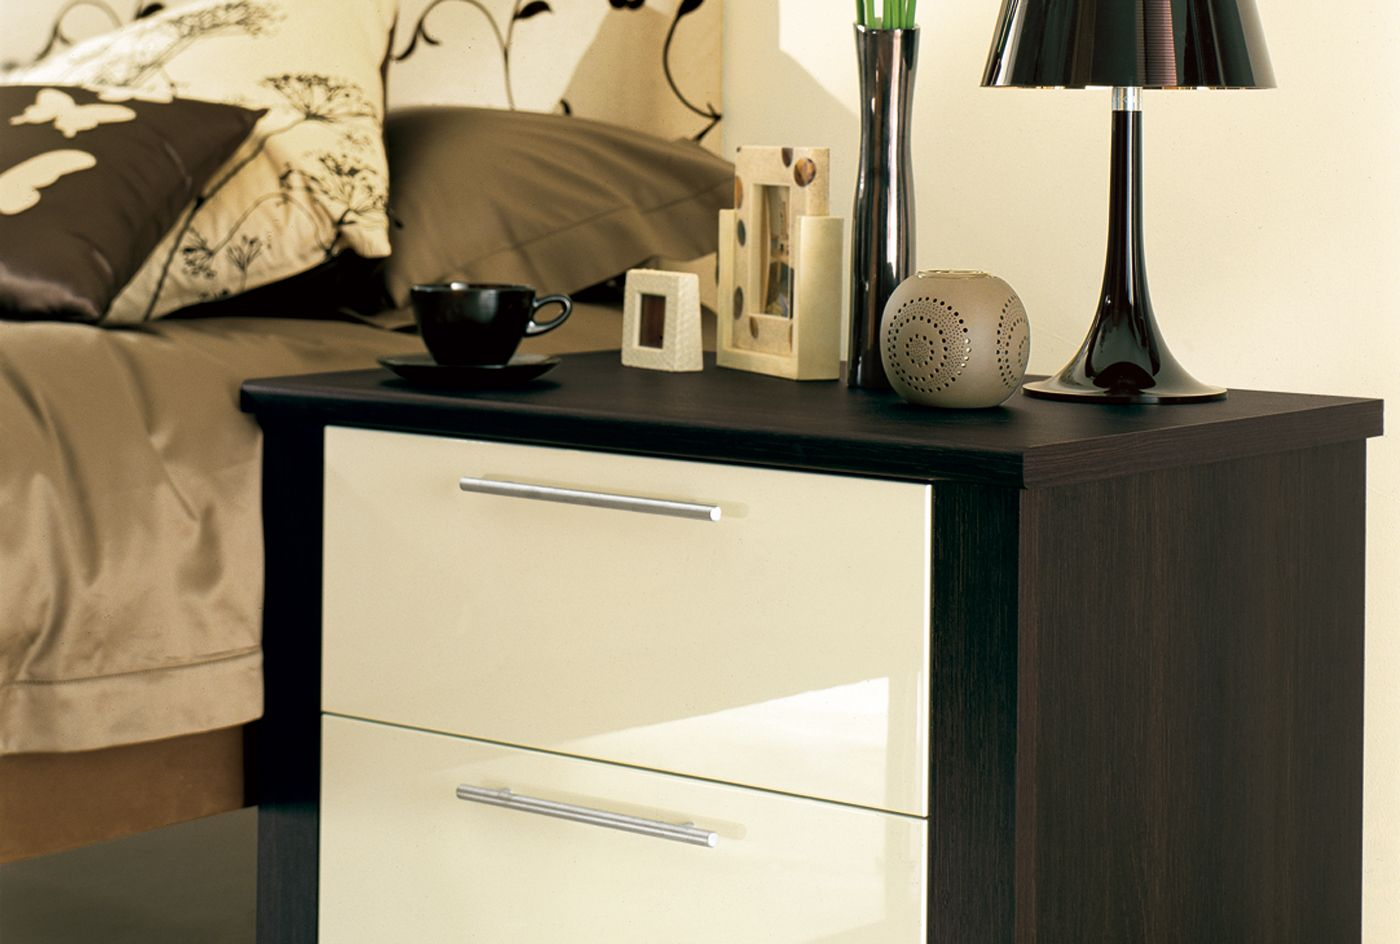 Sharps Fitted Bedroom Furniture Cosmopolitan Bedroom Furniture Wardrobes Sharps Bedrooms